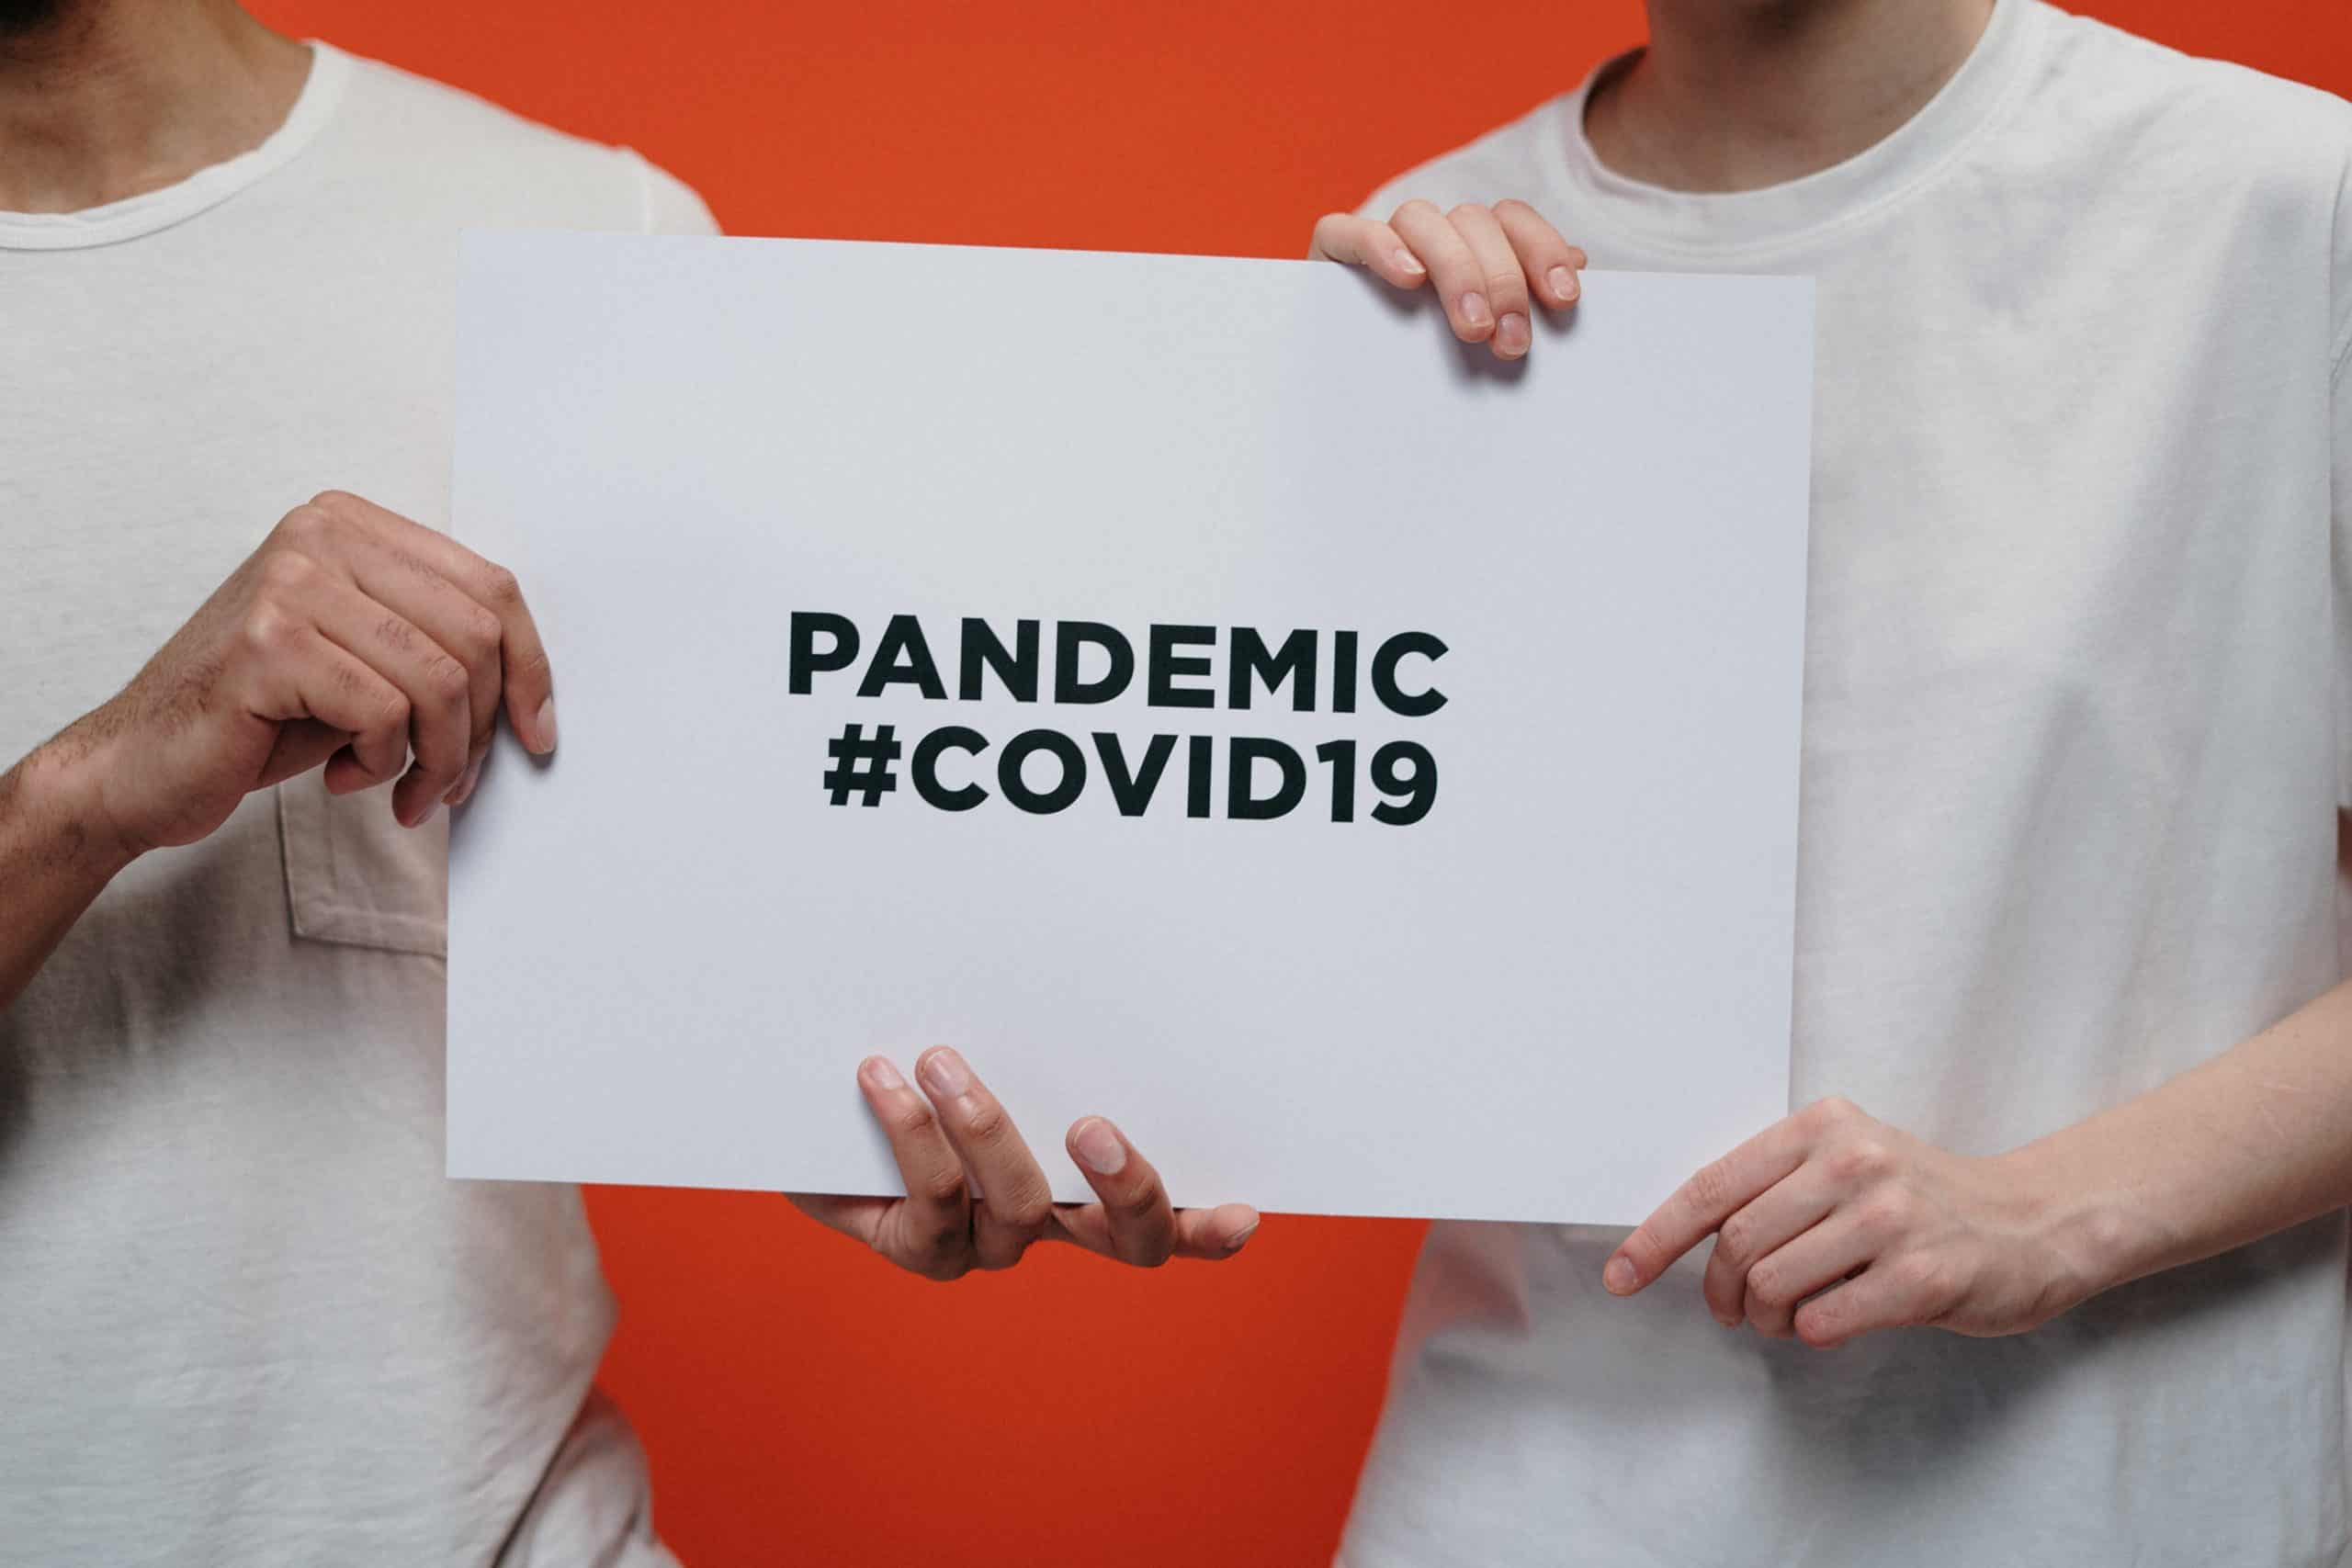 COVID-19 Virus: Ways On How To Prevent It